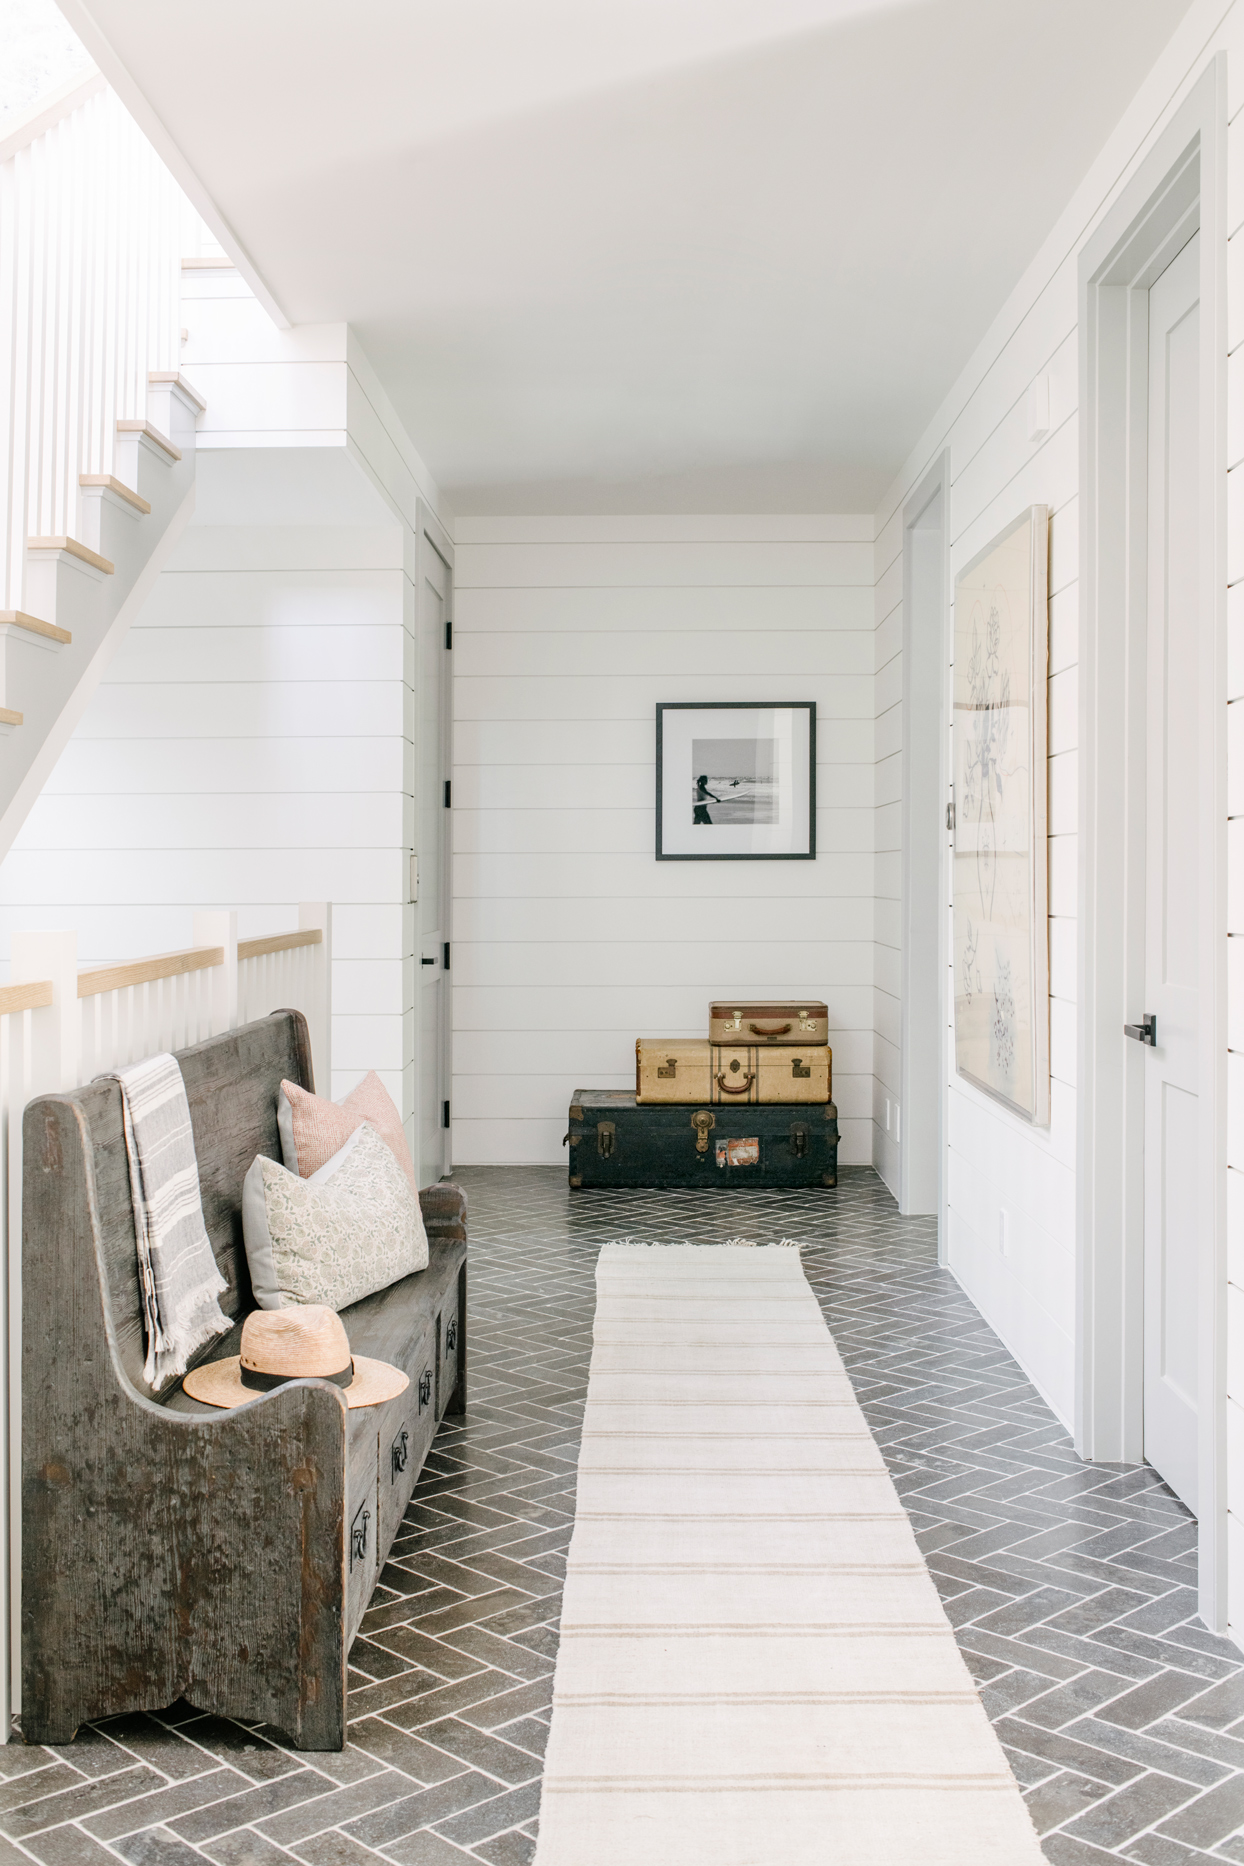 herringbone pattern limestone brick flooring with long cream and white runner